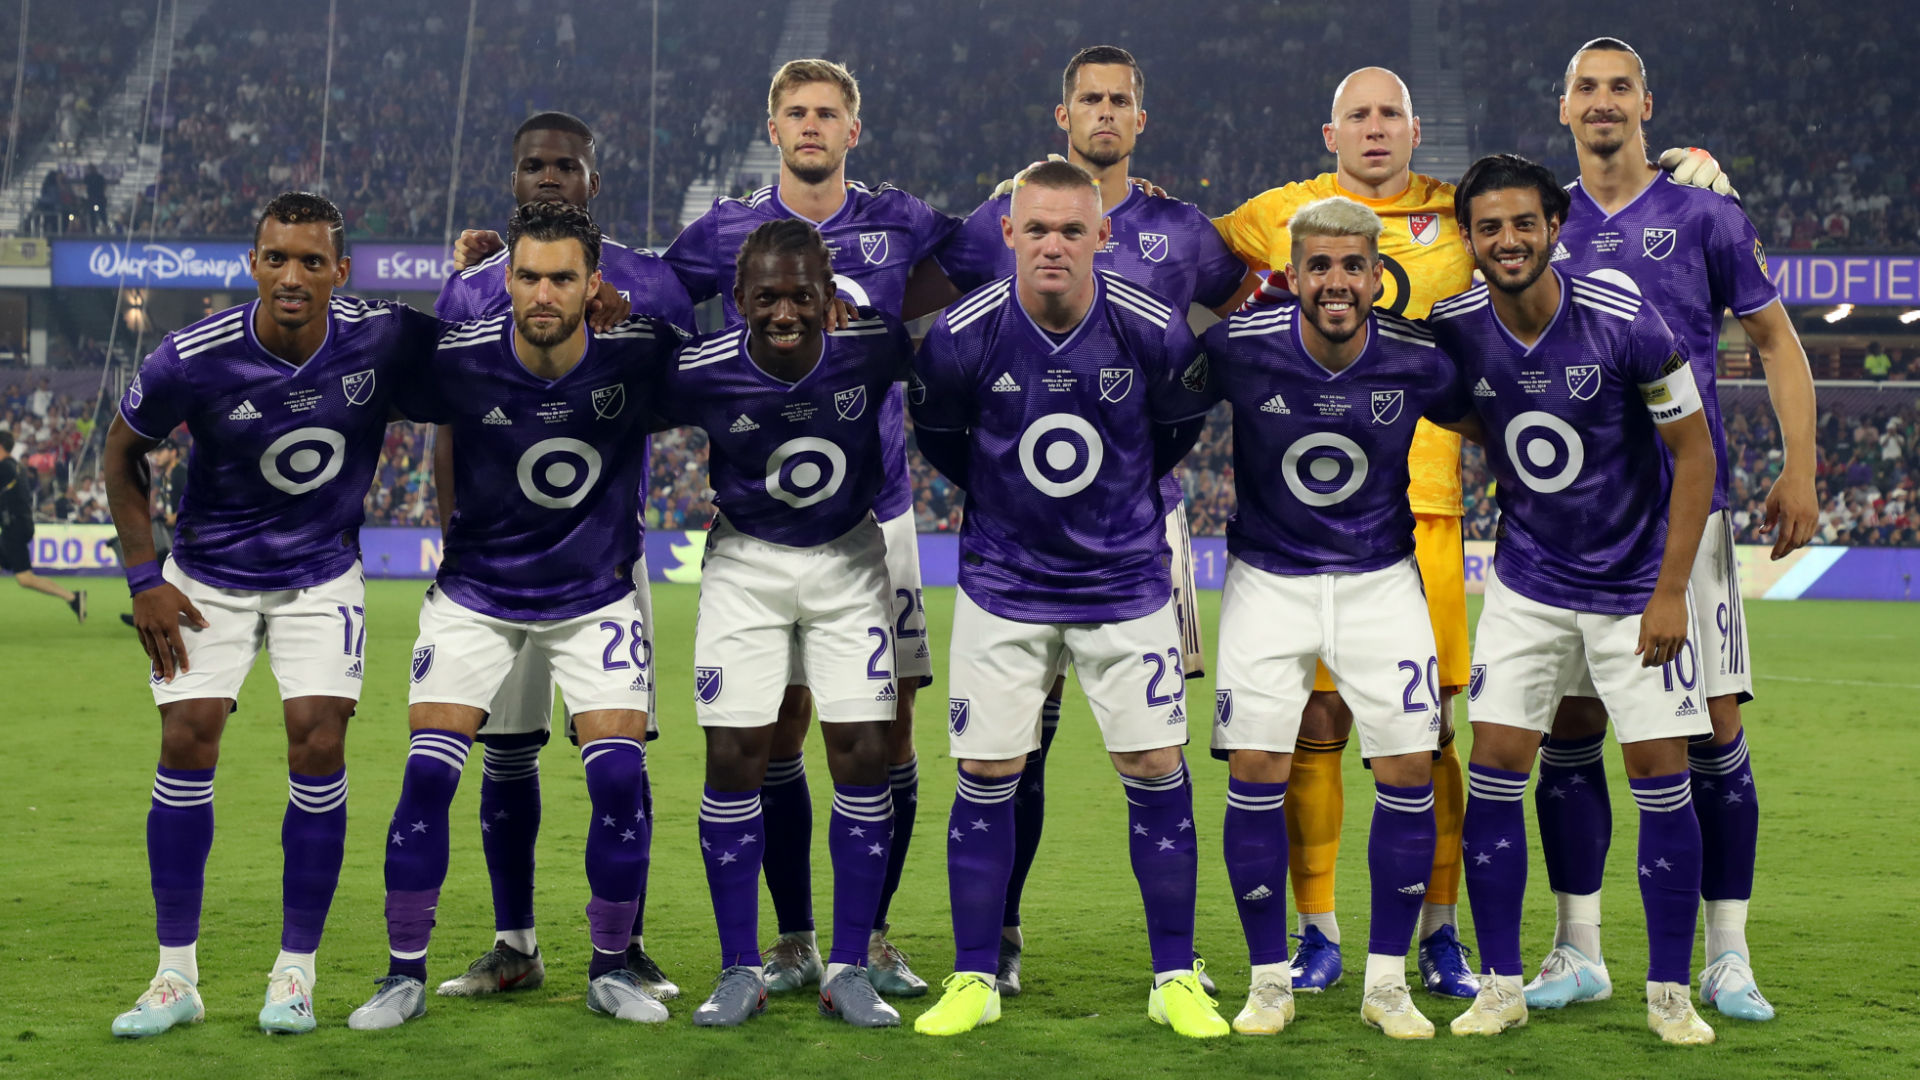 MLS All Star Team